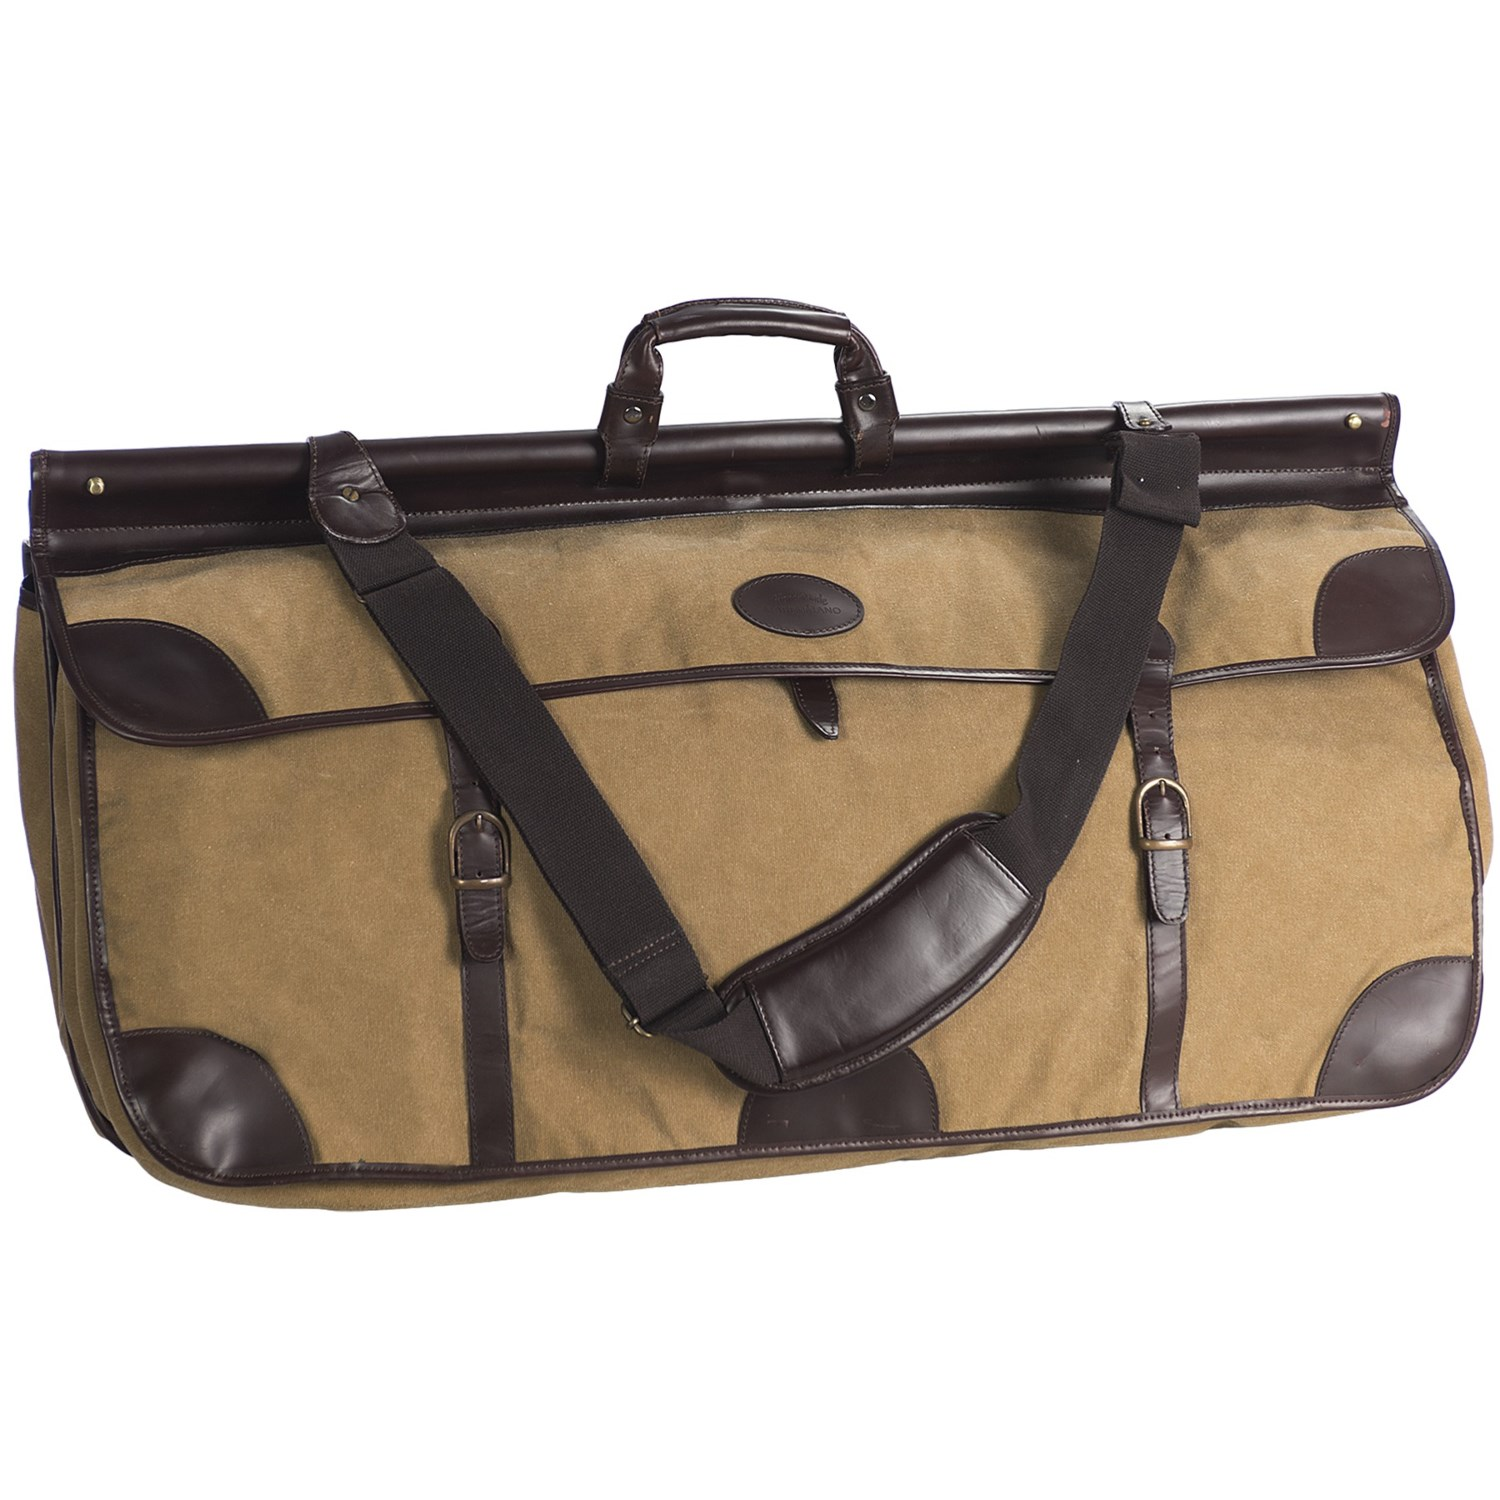 Expedition Tote Bag Sportsman Expedition Bag